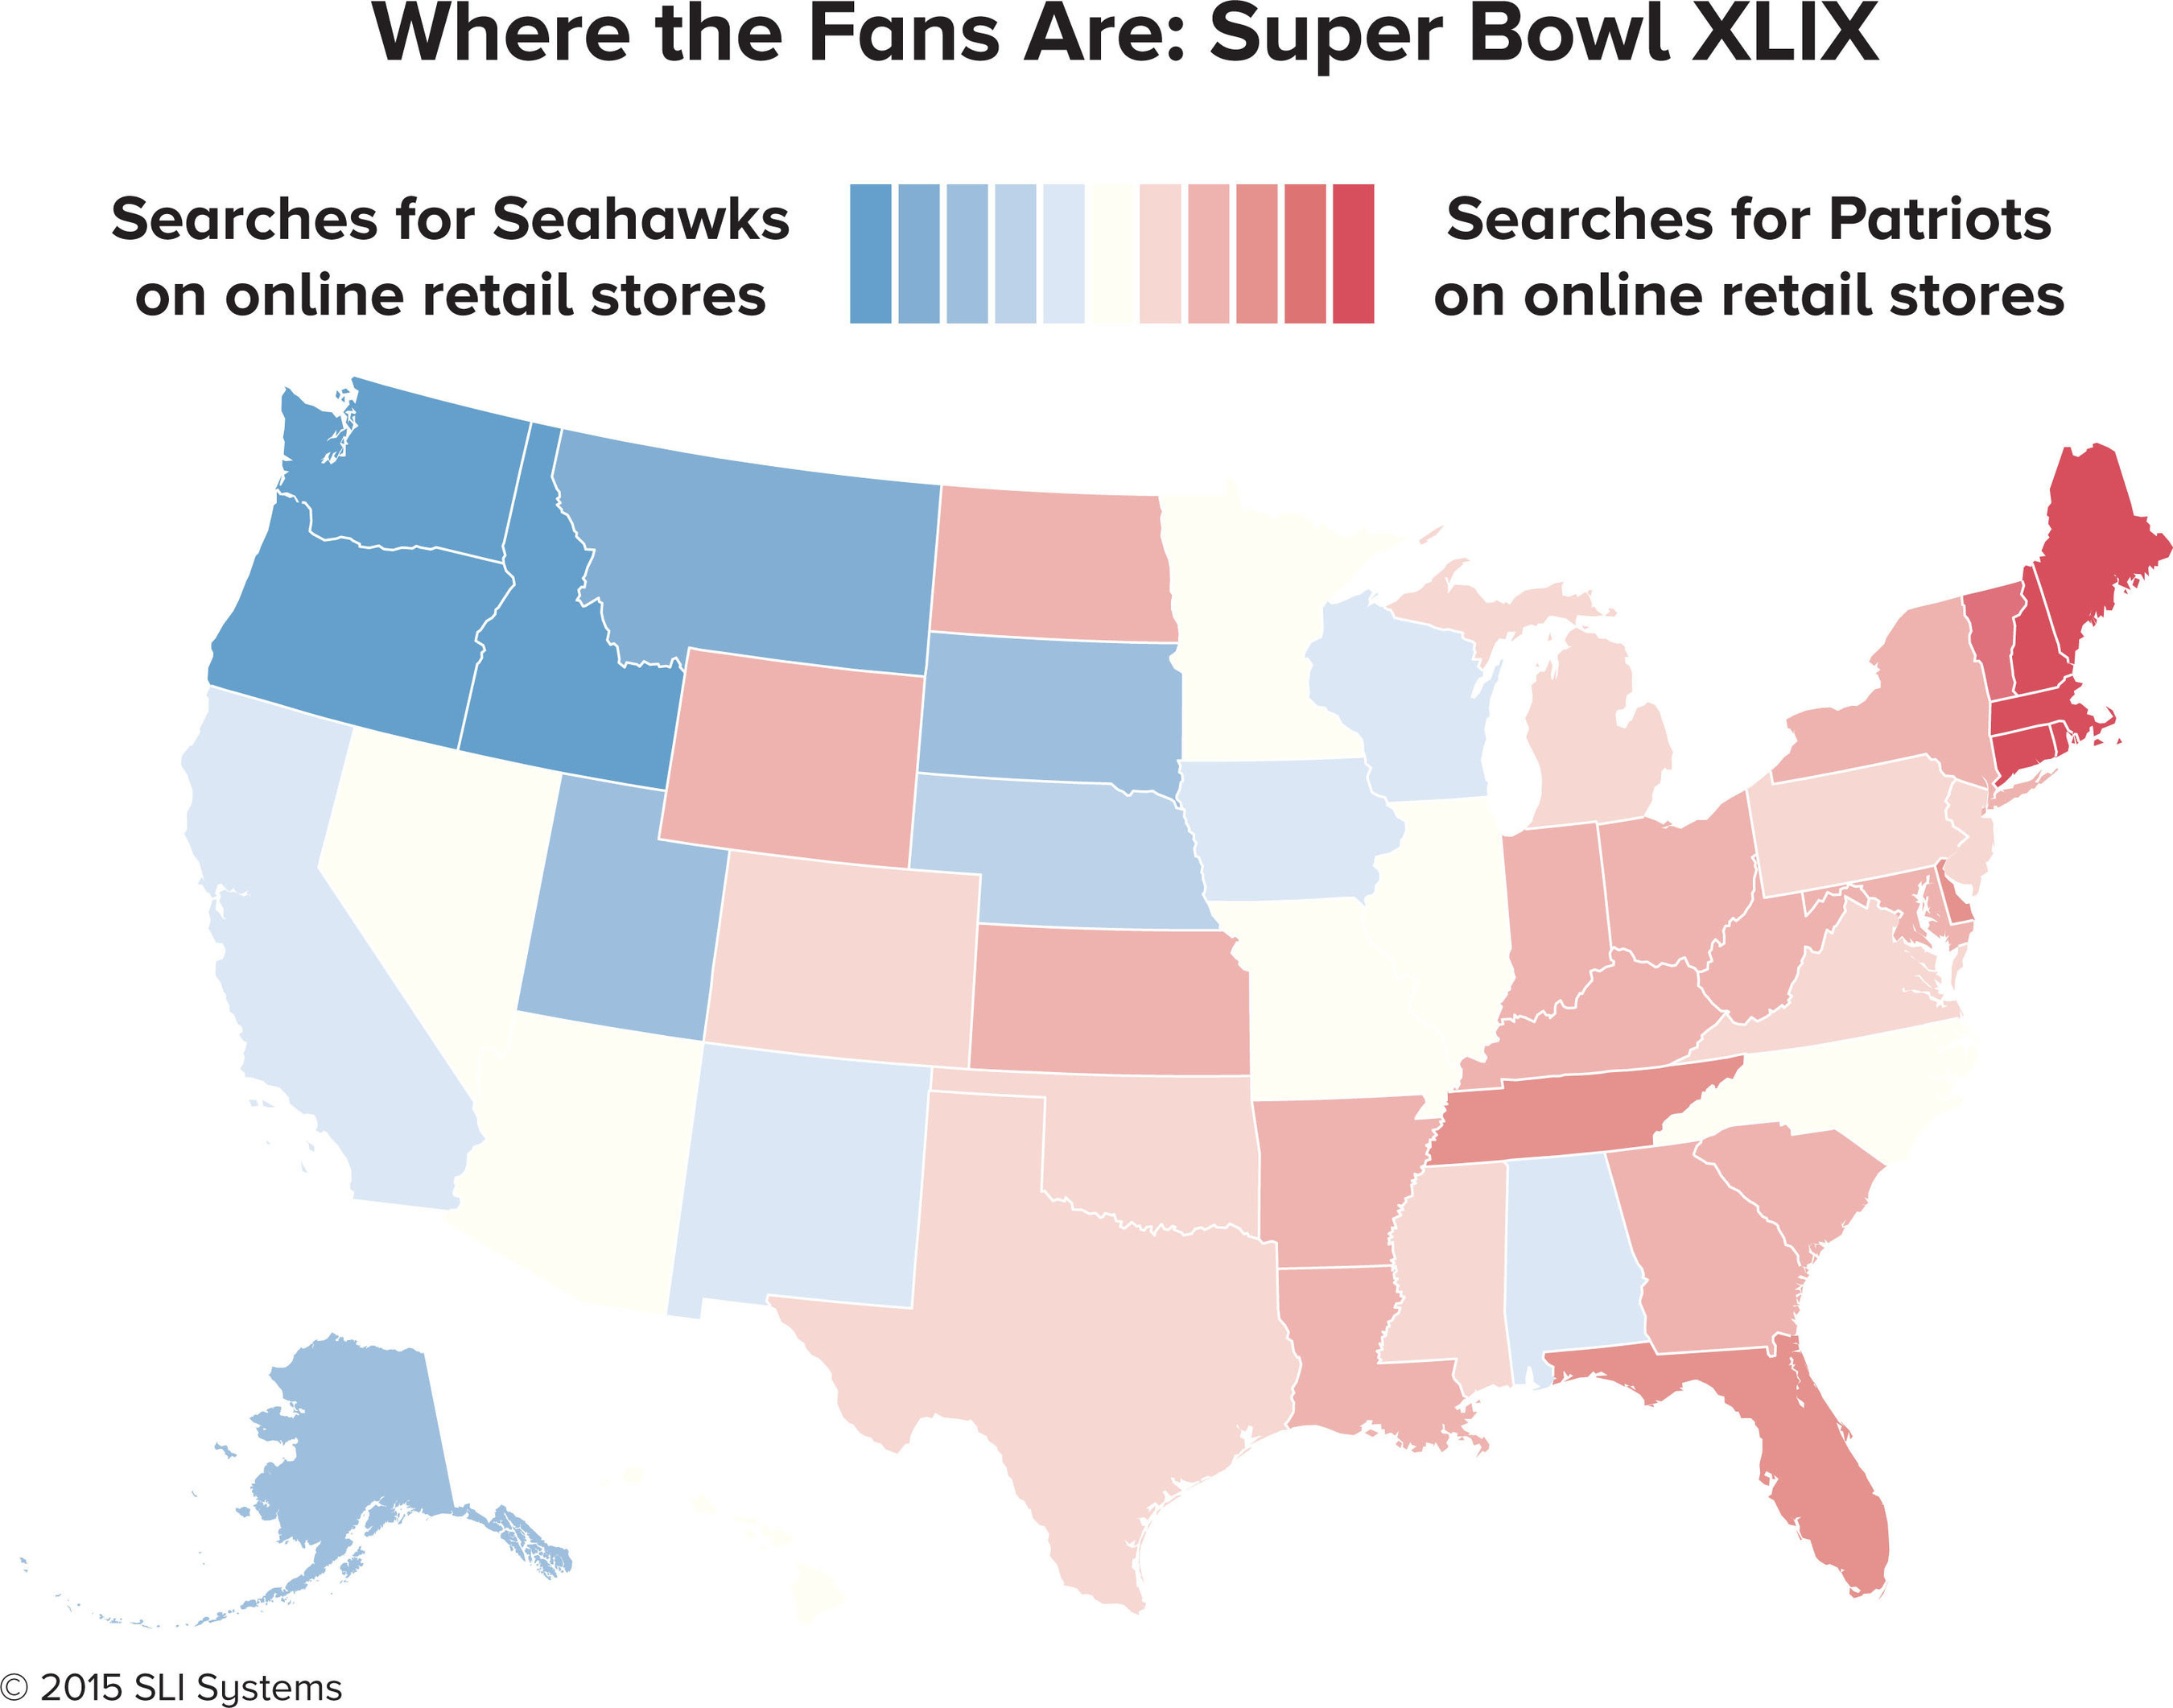 """Super Bowl Map Reveals """"Where the Fans Are"""" with State-by-State Look at Patriots and Seahawks' Popularity"""